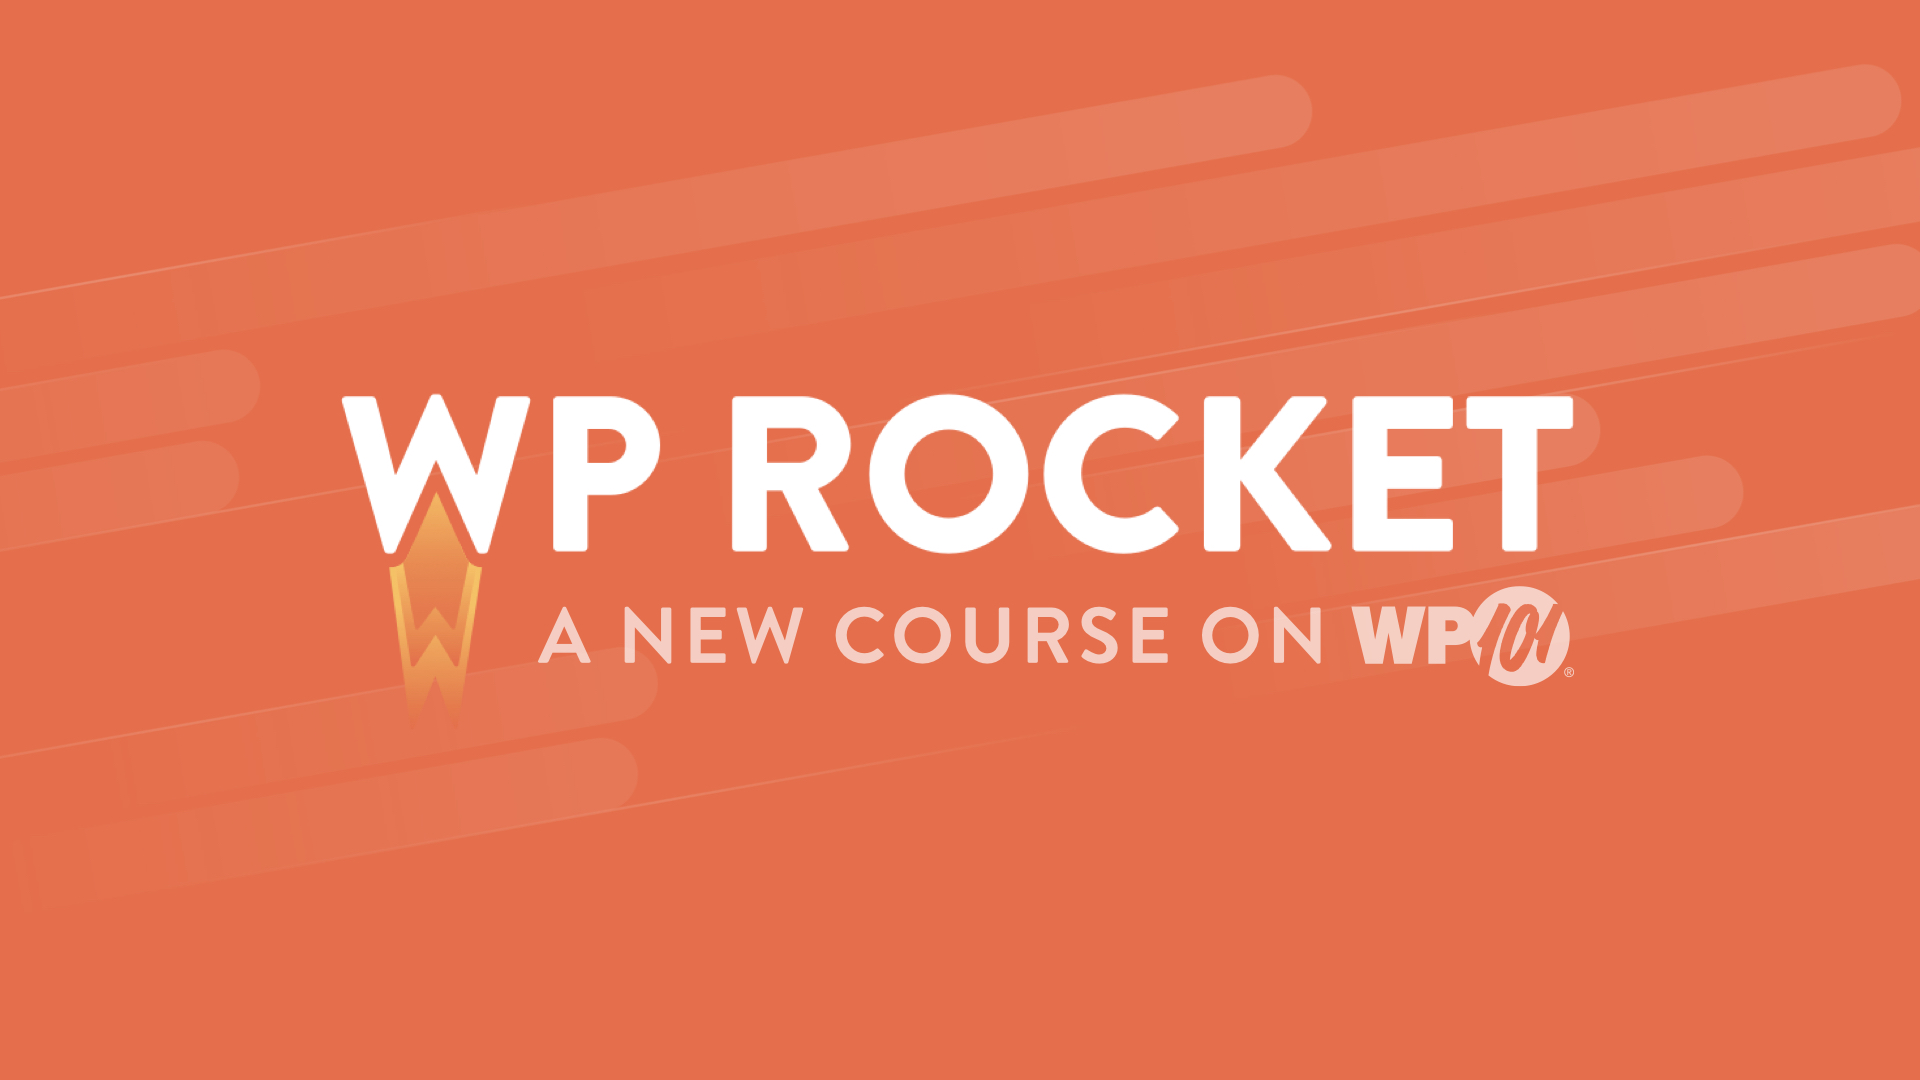 WP Rocket Course on WP101